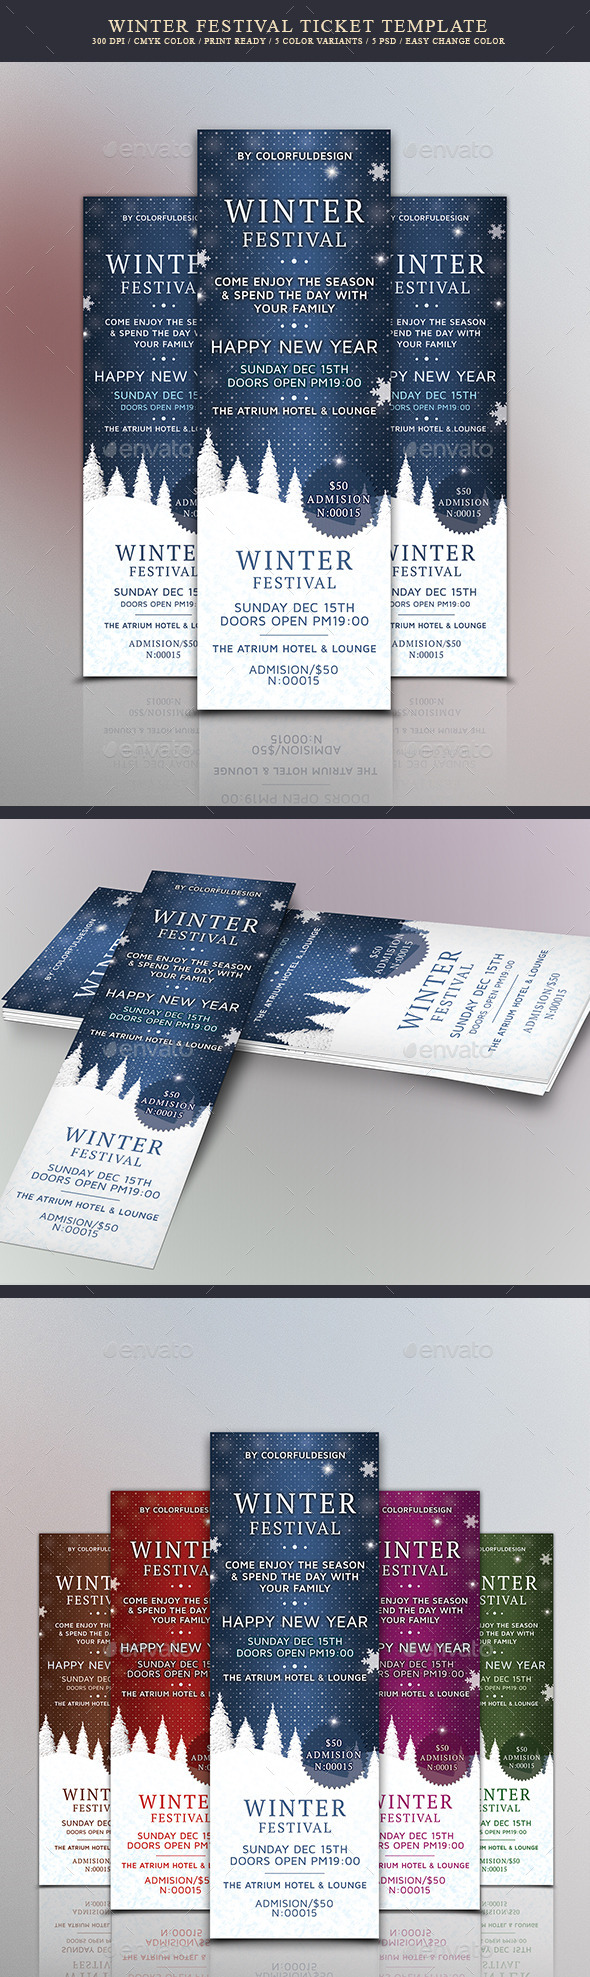 Winter Festival Ticket Template - Miscellaneous Print Templates